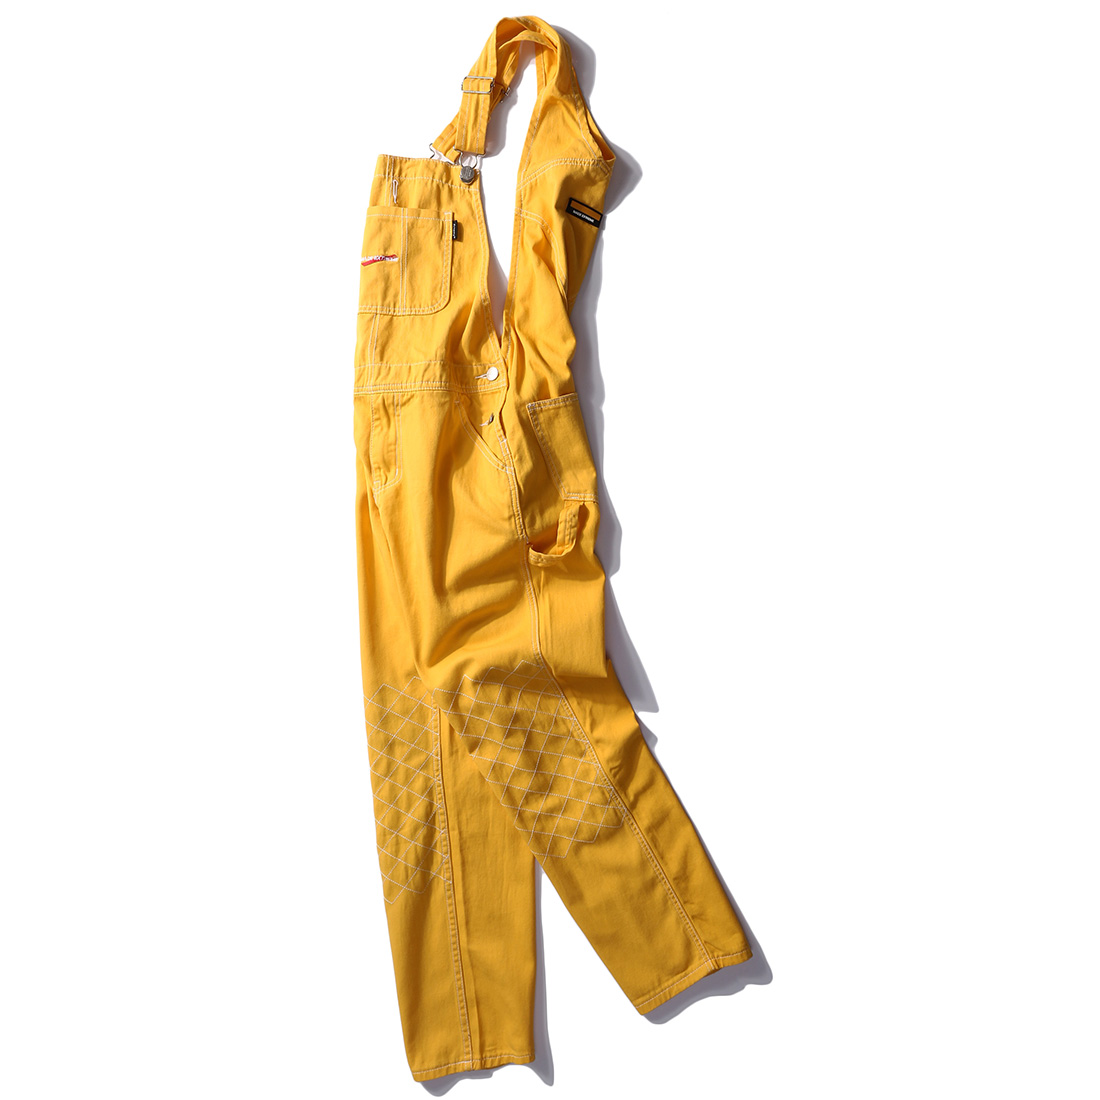 EFUNGAL 2019 Spring Summer Harem Overalls Joggers Men Women Hip Hop Streetwear High Fashion Casual Trousers Vintage Bib Pants-in Overalls from Men's Clothing    2